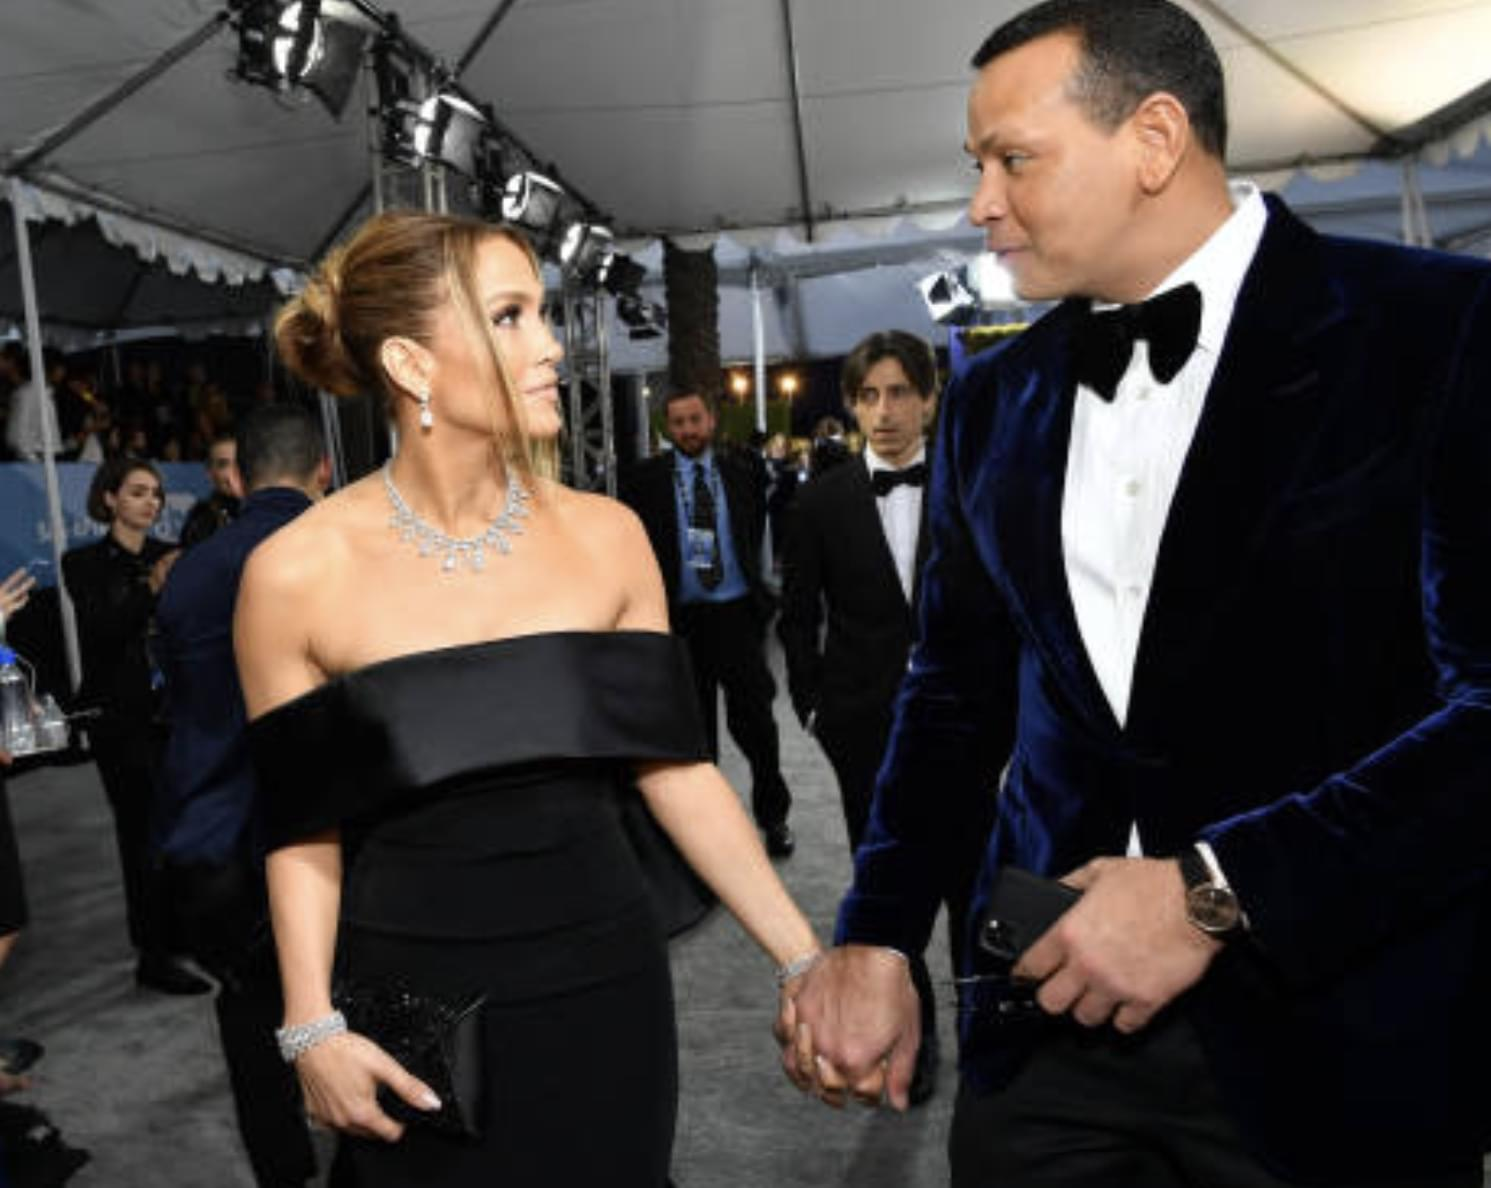 Jlo and Alex Rodriguez Go On A Double Date With Prince Harry and Meghan Markle